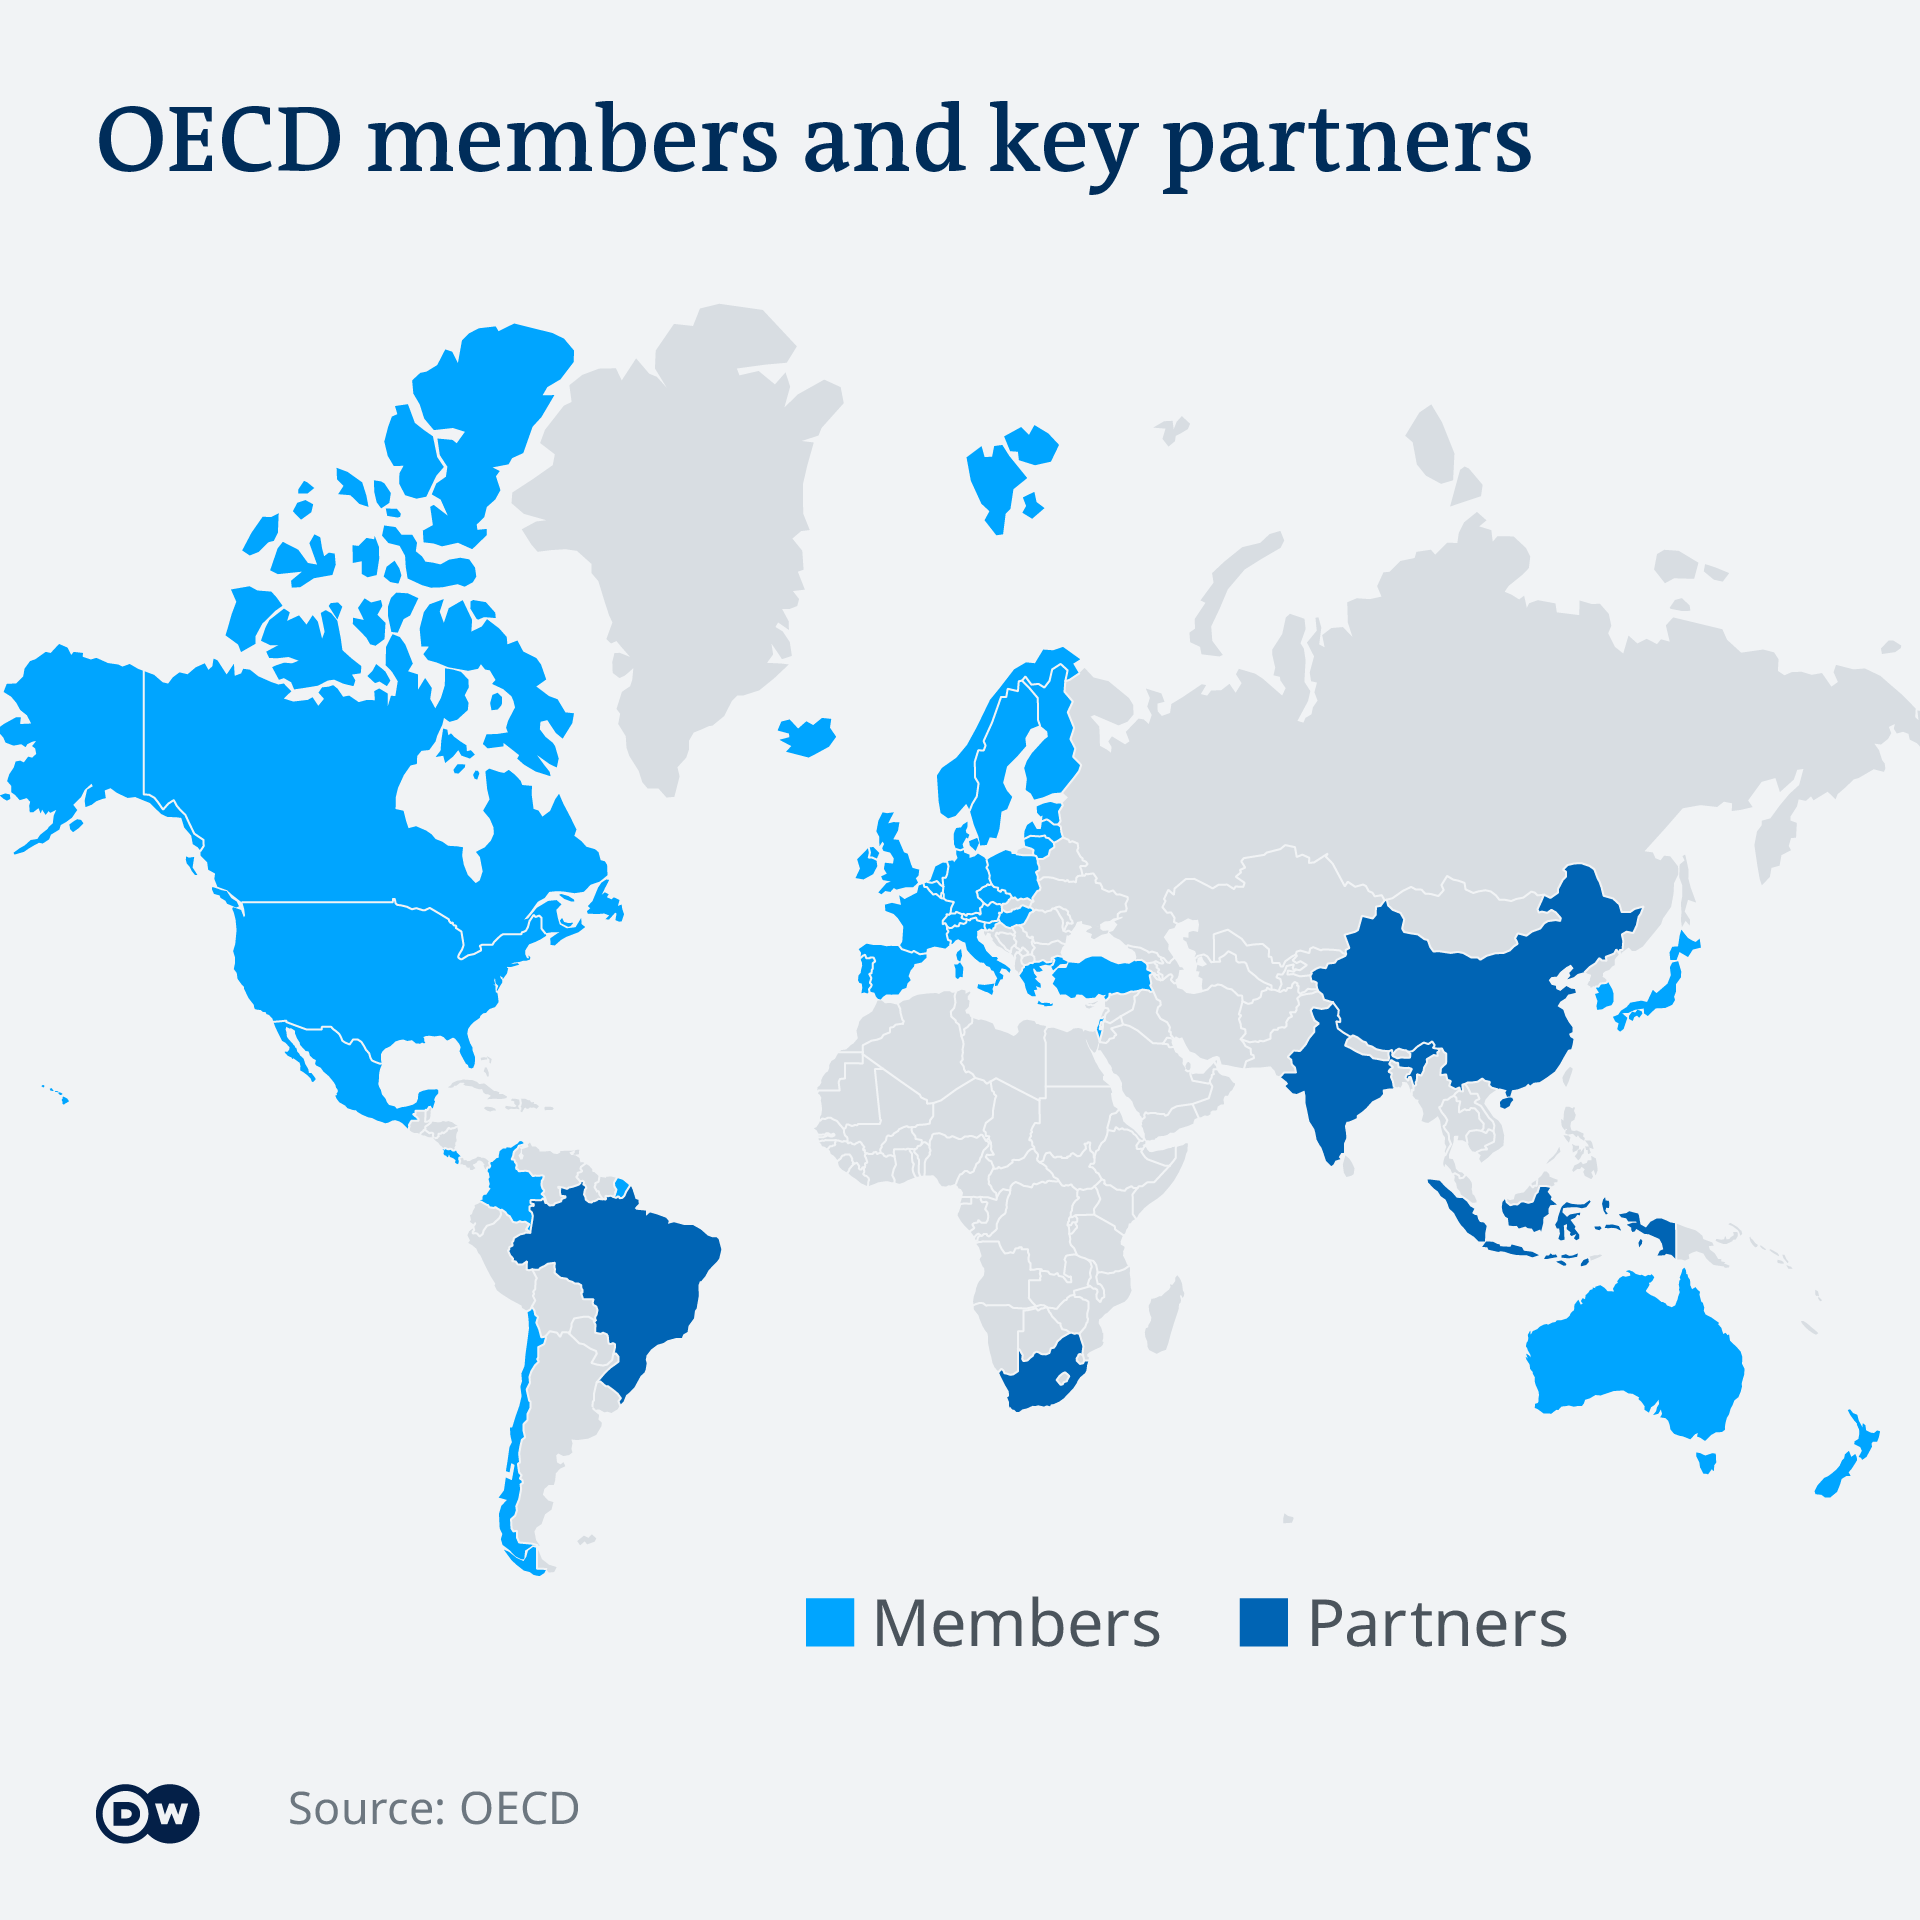 A global map showing OECD members and key partners